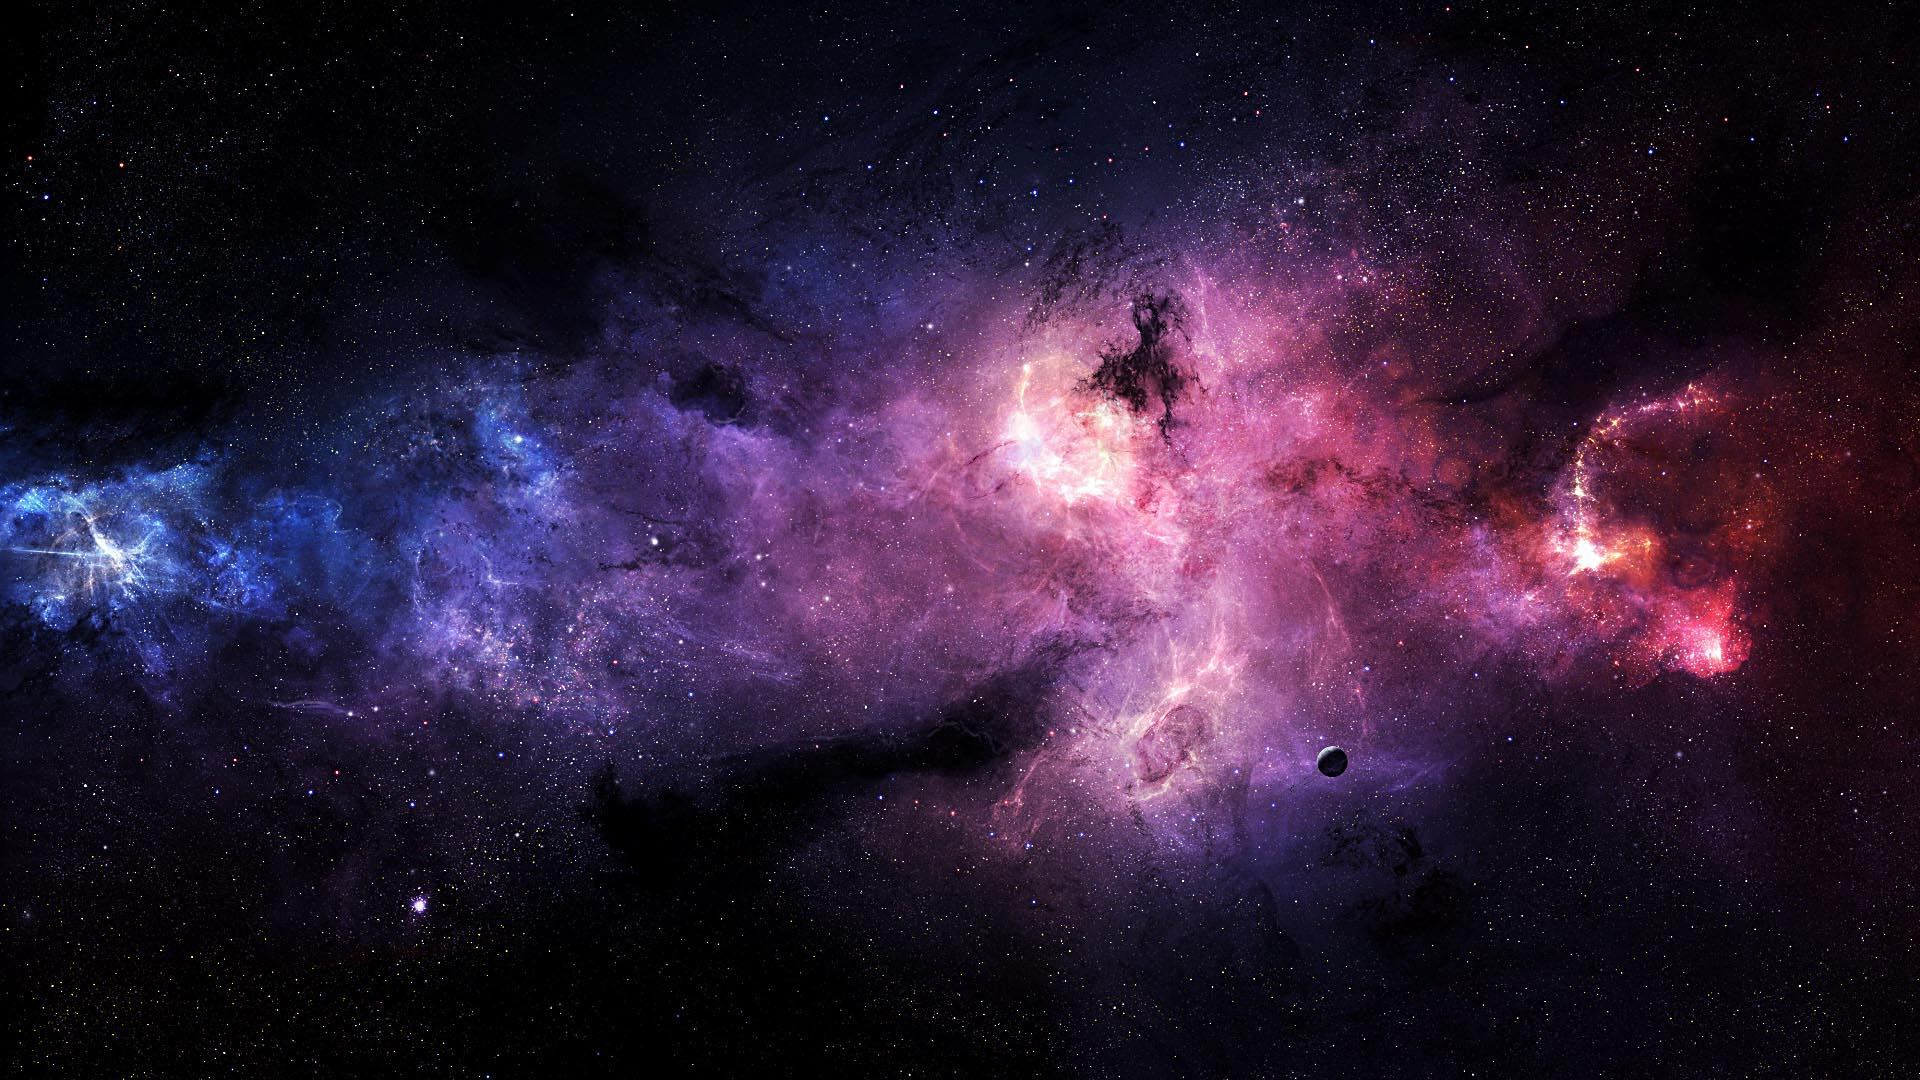 Stars Galaxies Purple HD Wallpaper FullHDWpp   Full HD Wallpapers 1920x1080